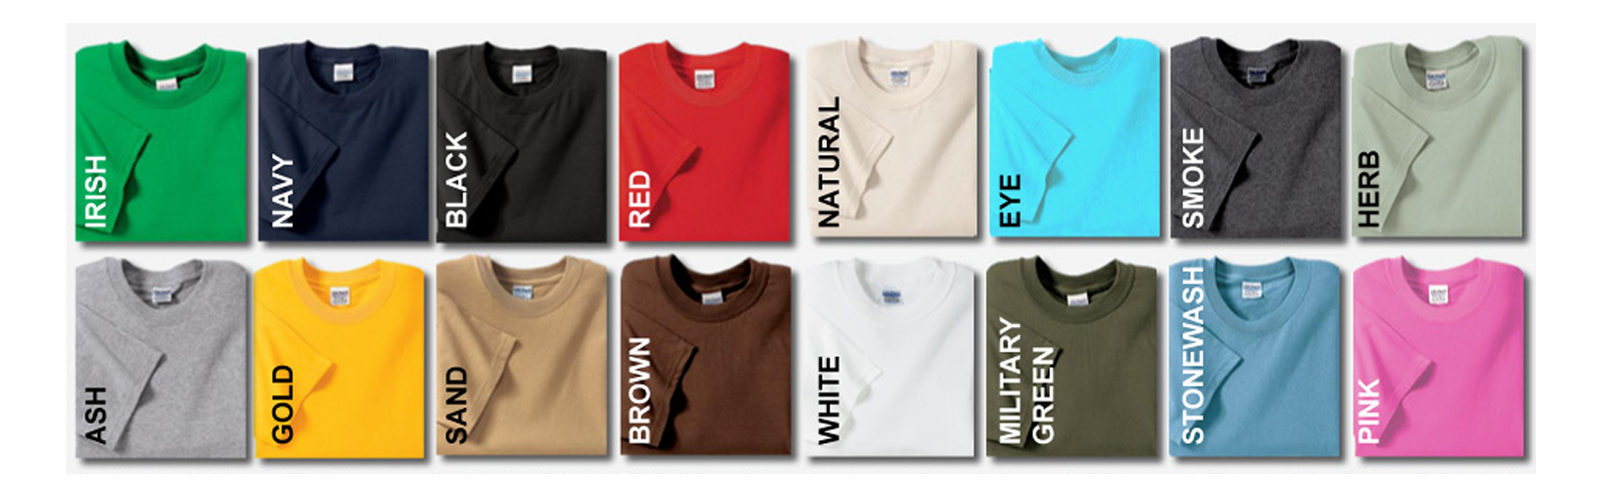 Irsih , Navy, Black, Red, Natural, Eye, Smoke, Herb, Ash, Gold, Sand, Brown, White, Military Green, Stonewash, Pink